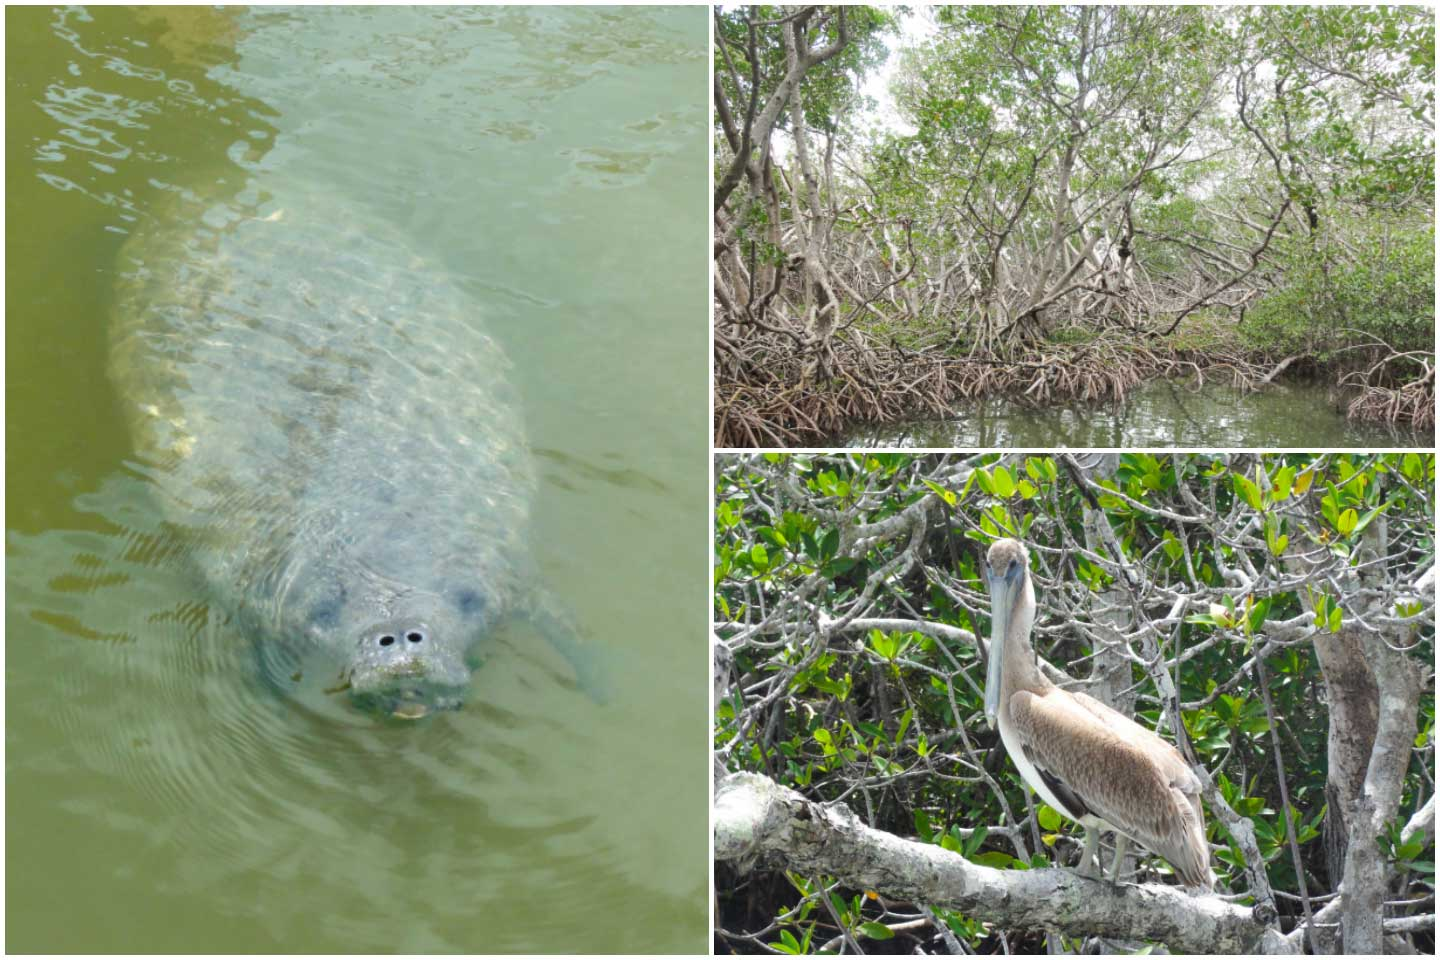 College of three photos from our Everglades tour - one of a manatee, one of mangroves, and one of a young pelican perched in the mangroves.